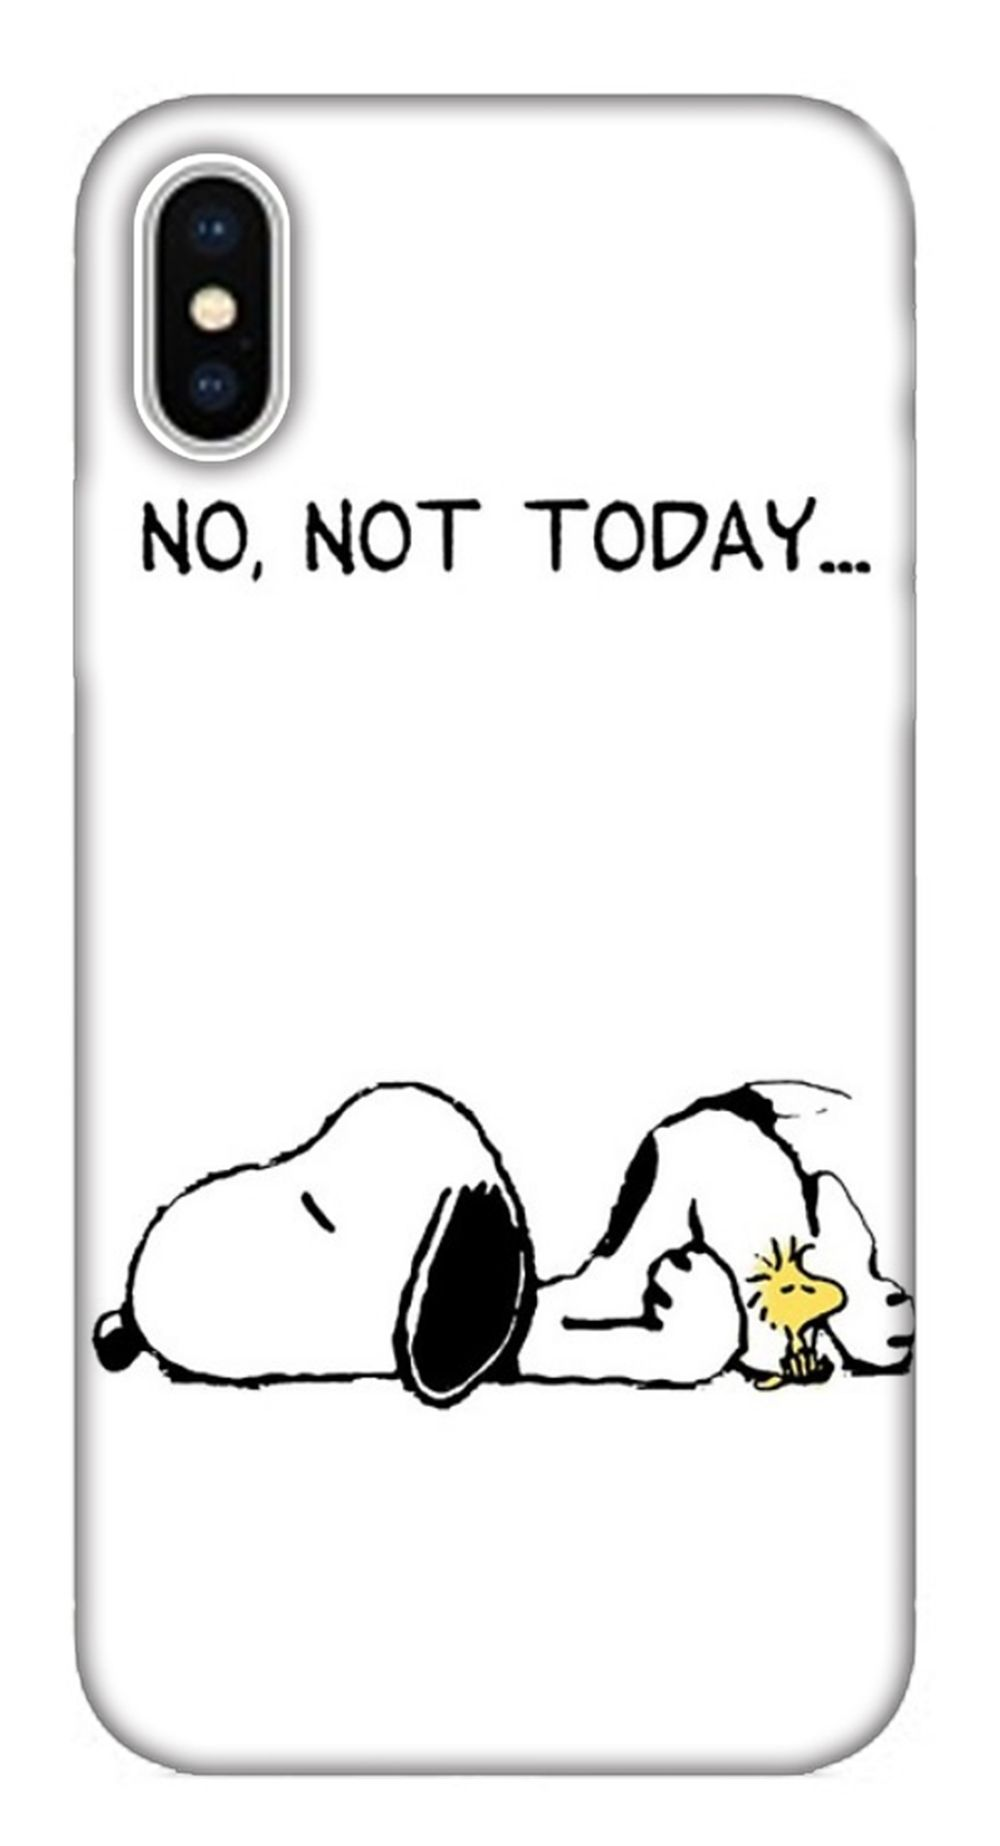 25 cutest iphone x wallpaper case cover ever - not today snoopy